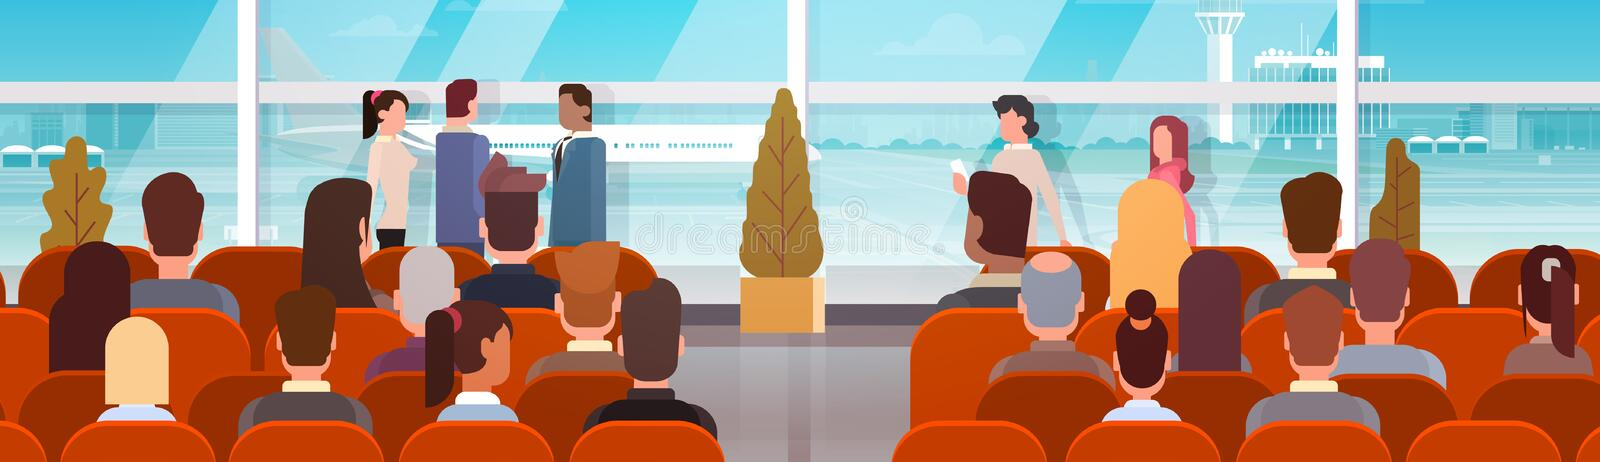 Traveler People in Airport Hall Departure Terminal Travel, Passenger Sitting in Waiting Room. Flat Vector Illustration vector illustration